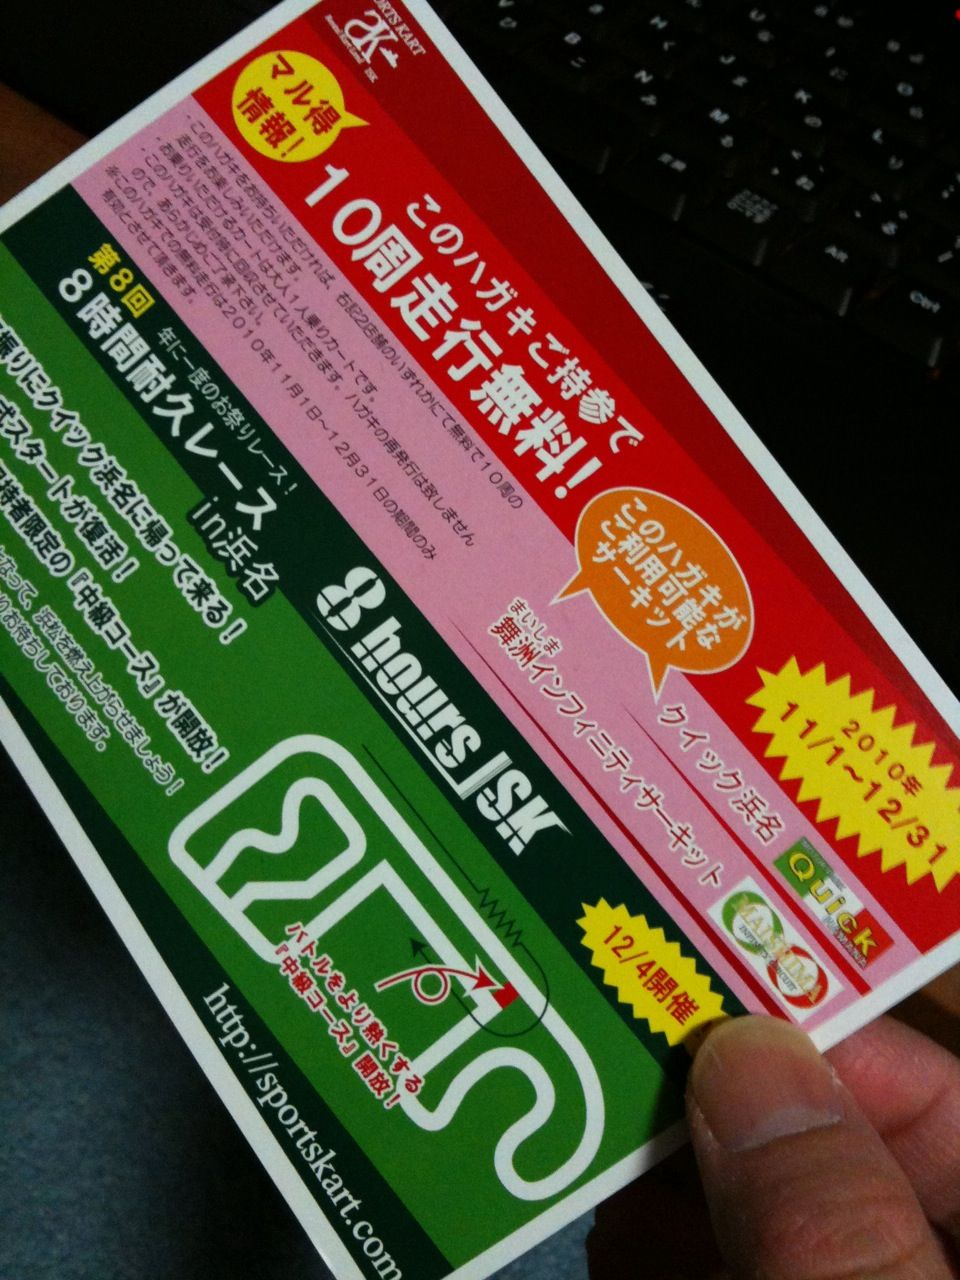 20101212_freeticket.jpg